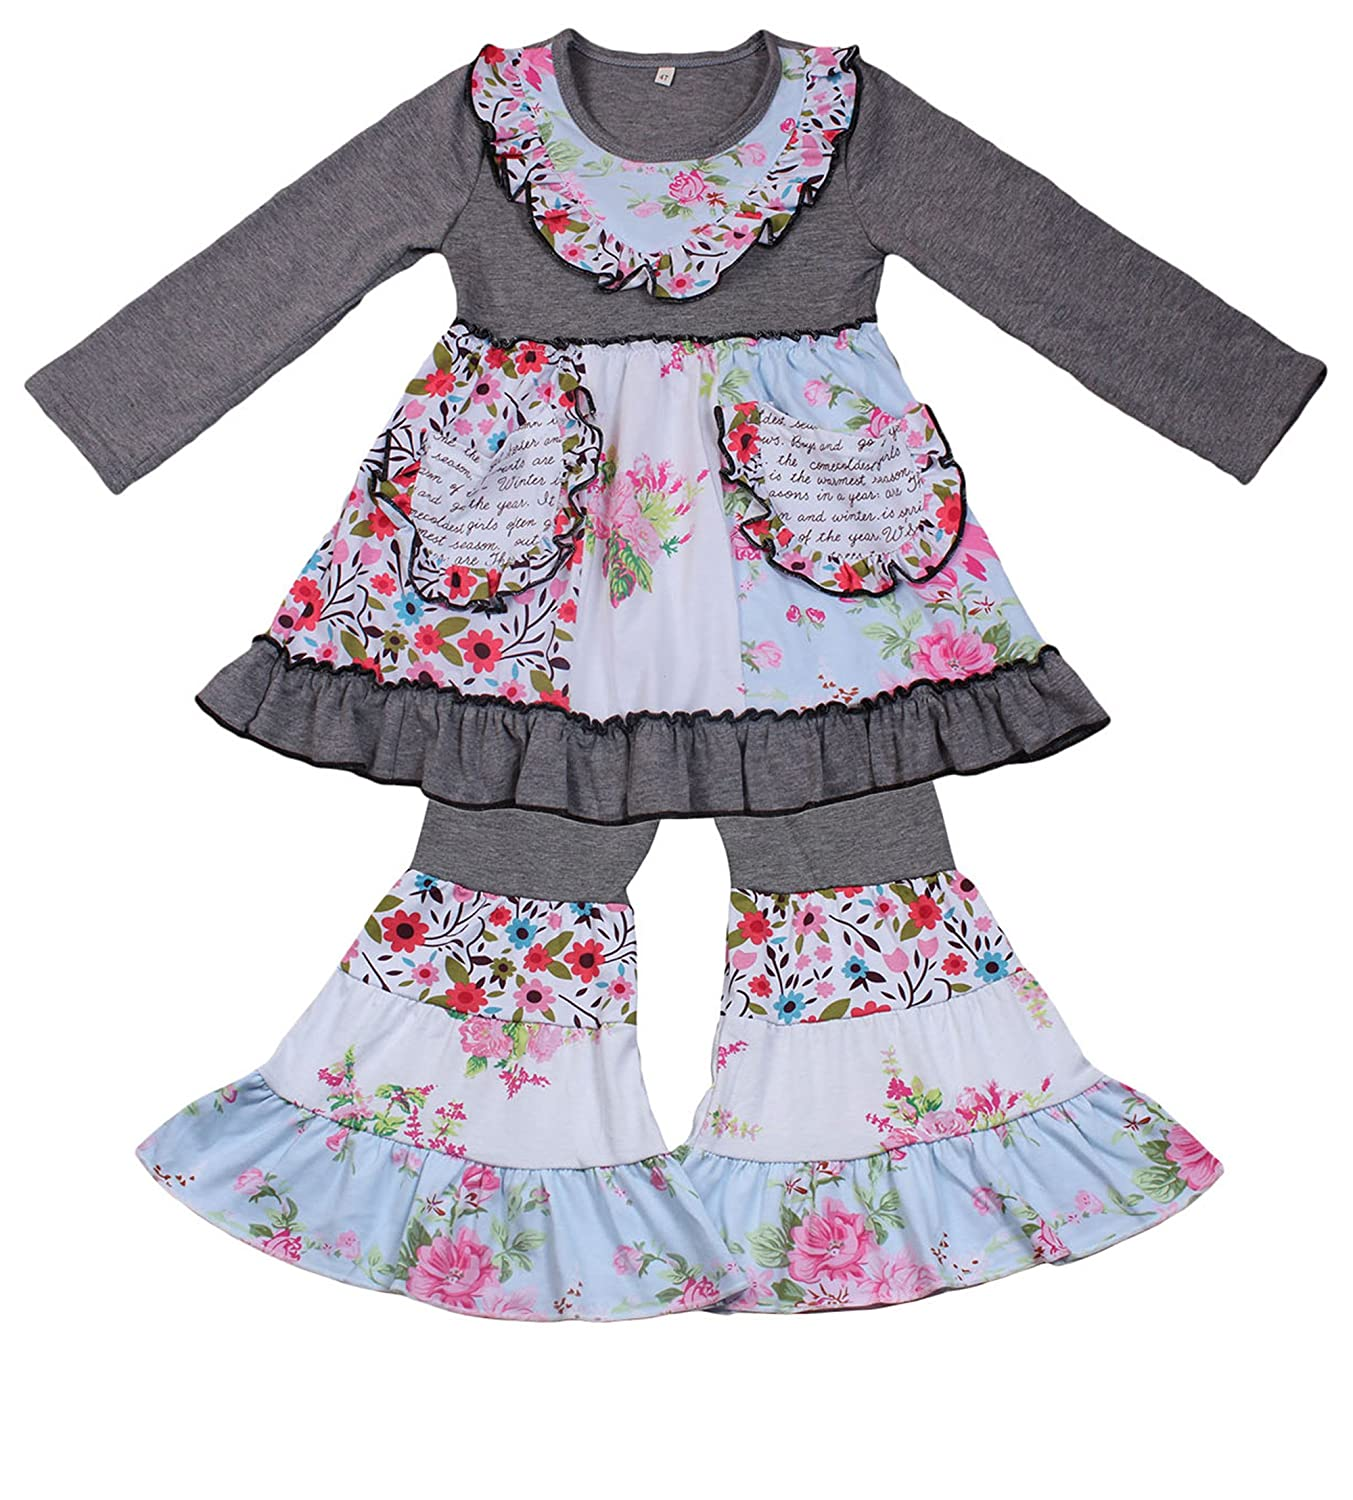 Yawoo Haan Kids Girls Ruffle Dress Pants Party Clothing Set Boutique Outfits